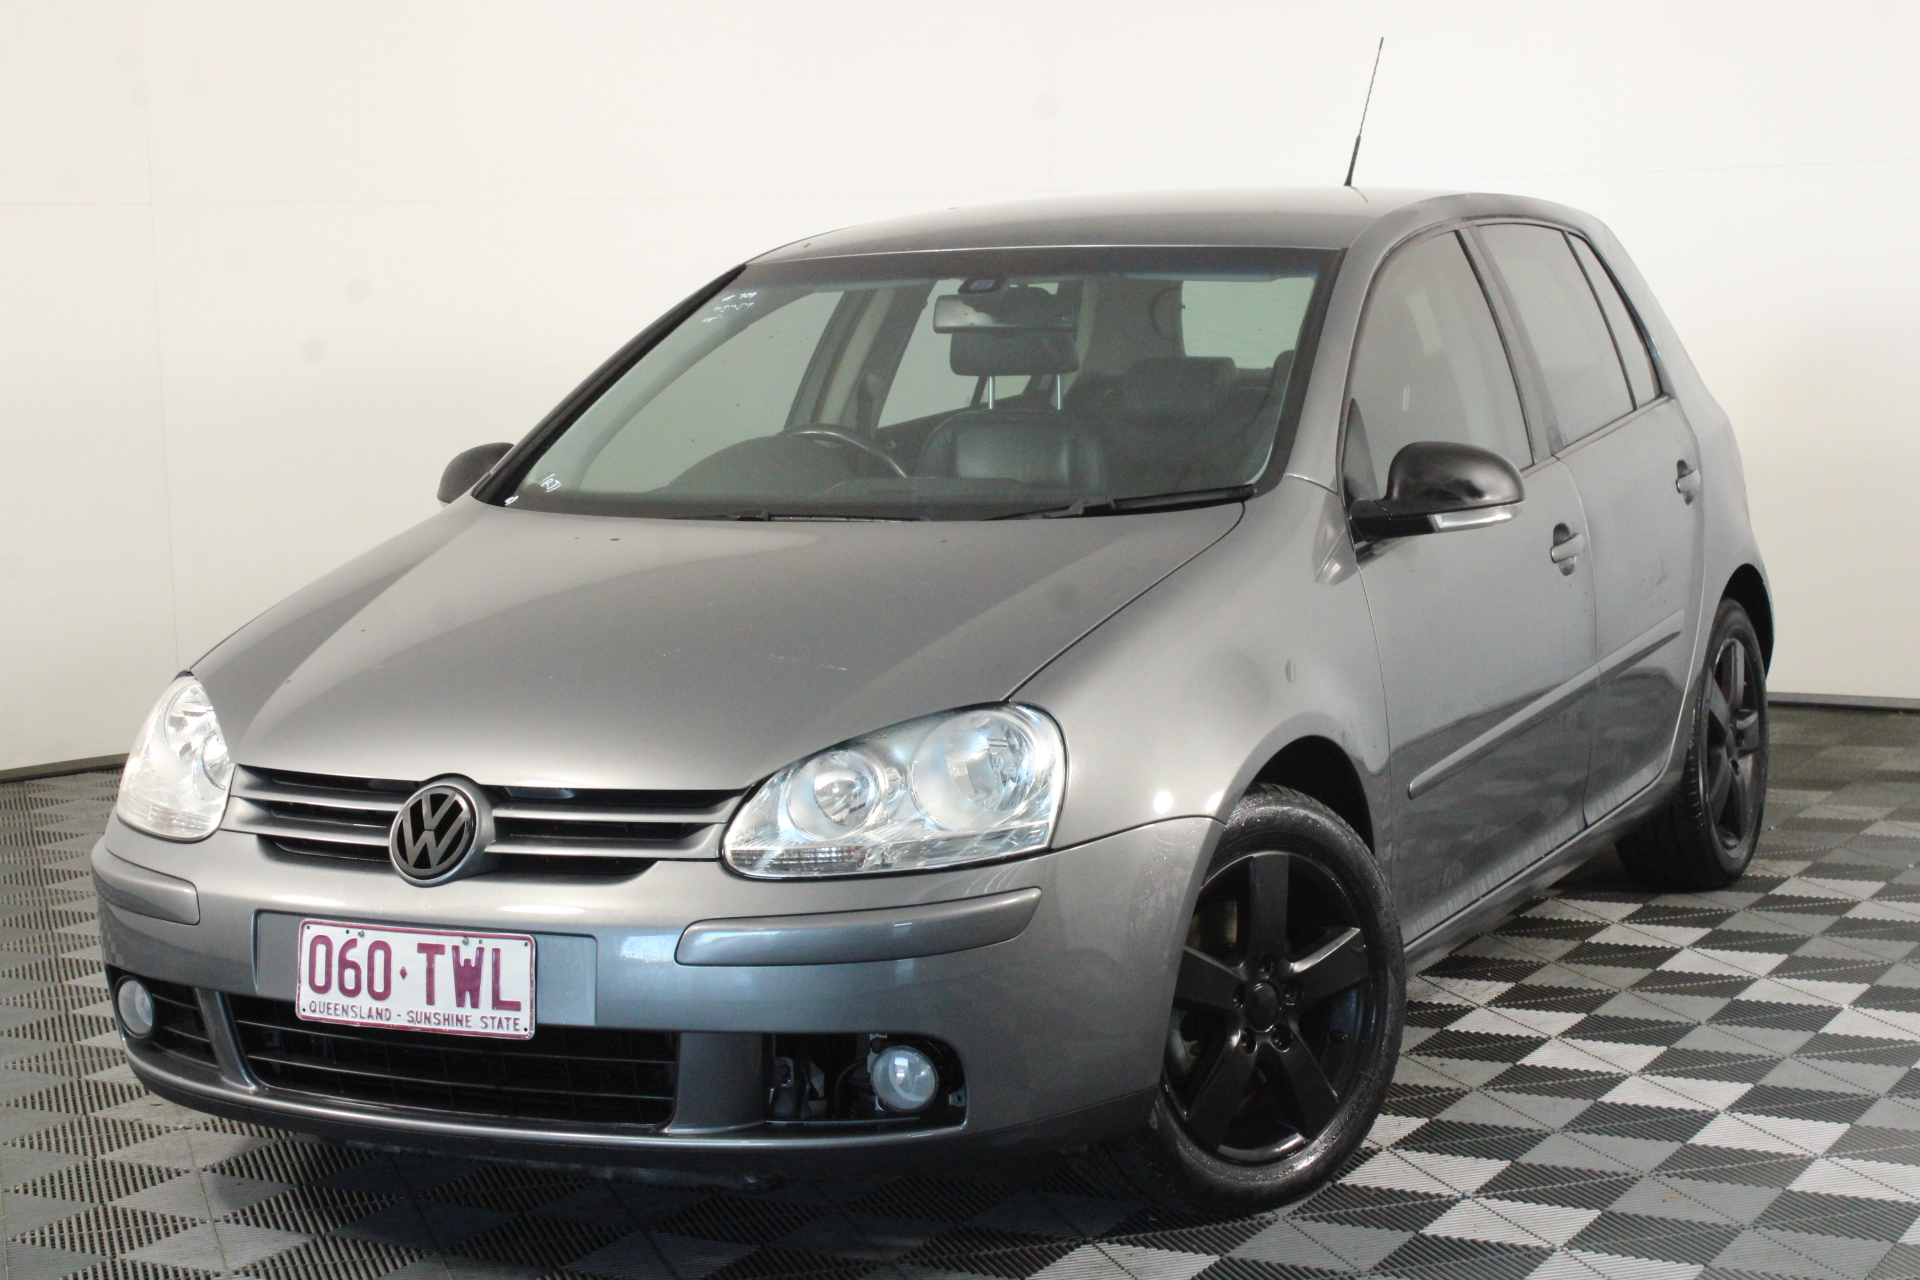 2008 Volkswagen Golf 2.0 TDi Pacific 1k Turbo Diesel Automatic Hatchback